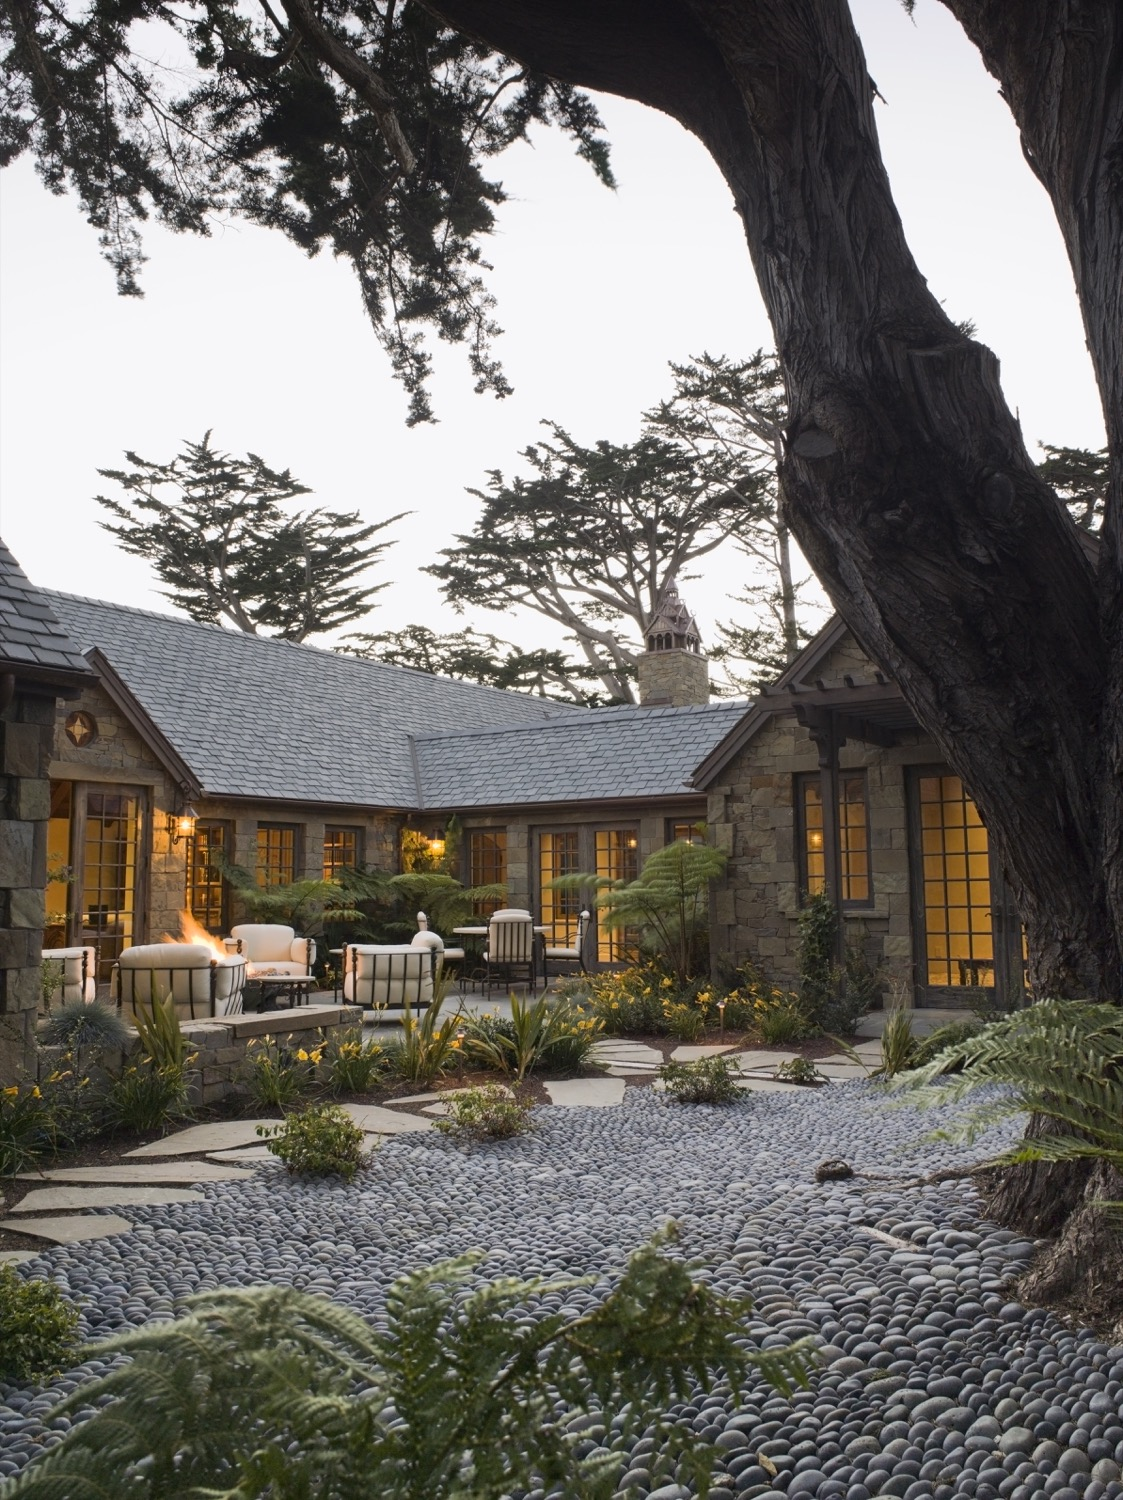 In a courtyard,paving created from large, smooth pebbles provides an unusual tactile texture.